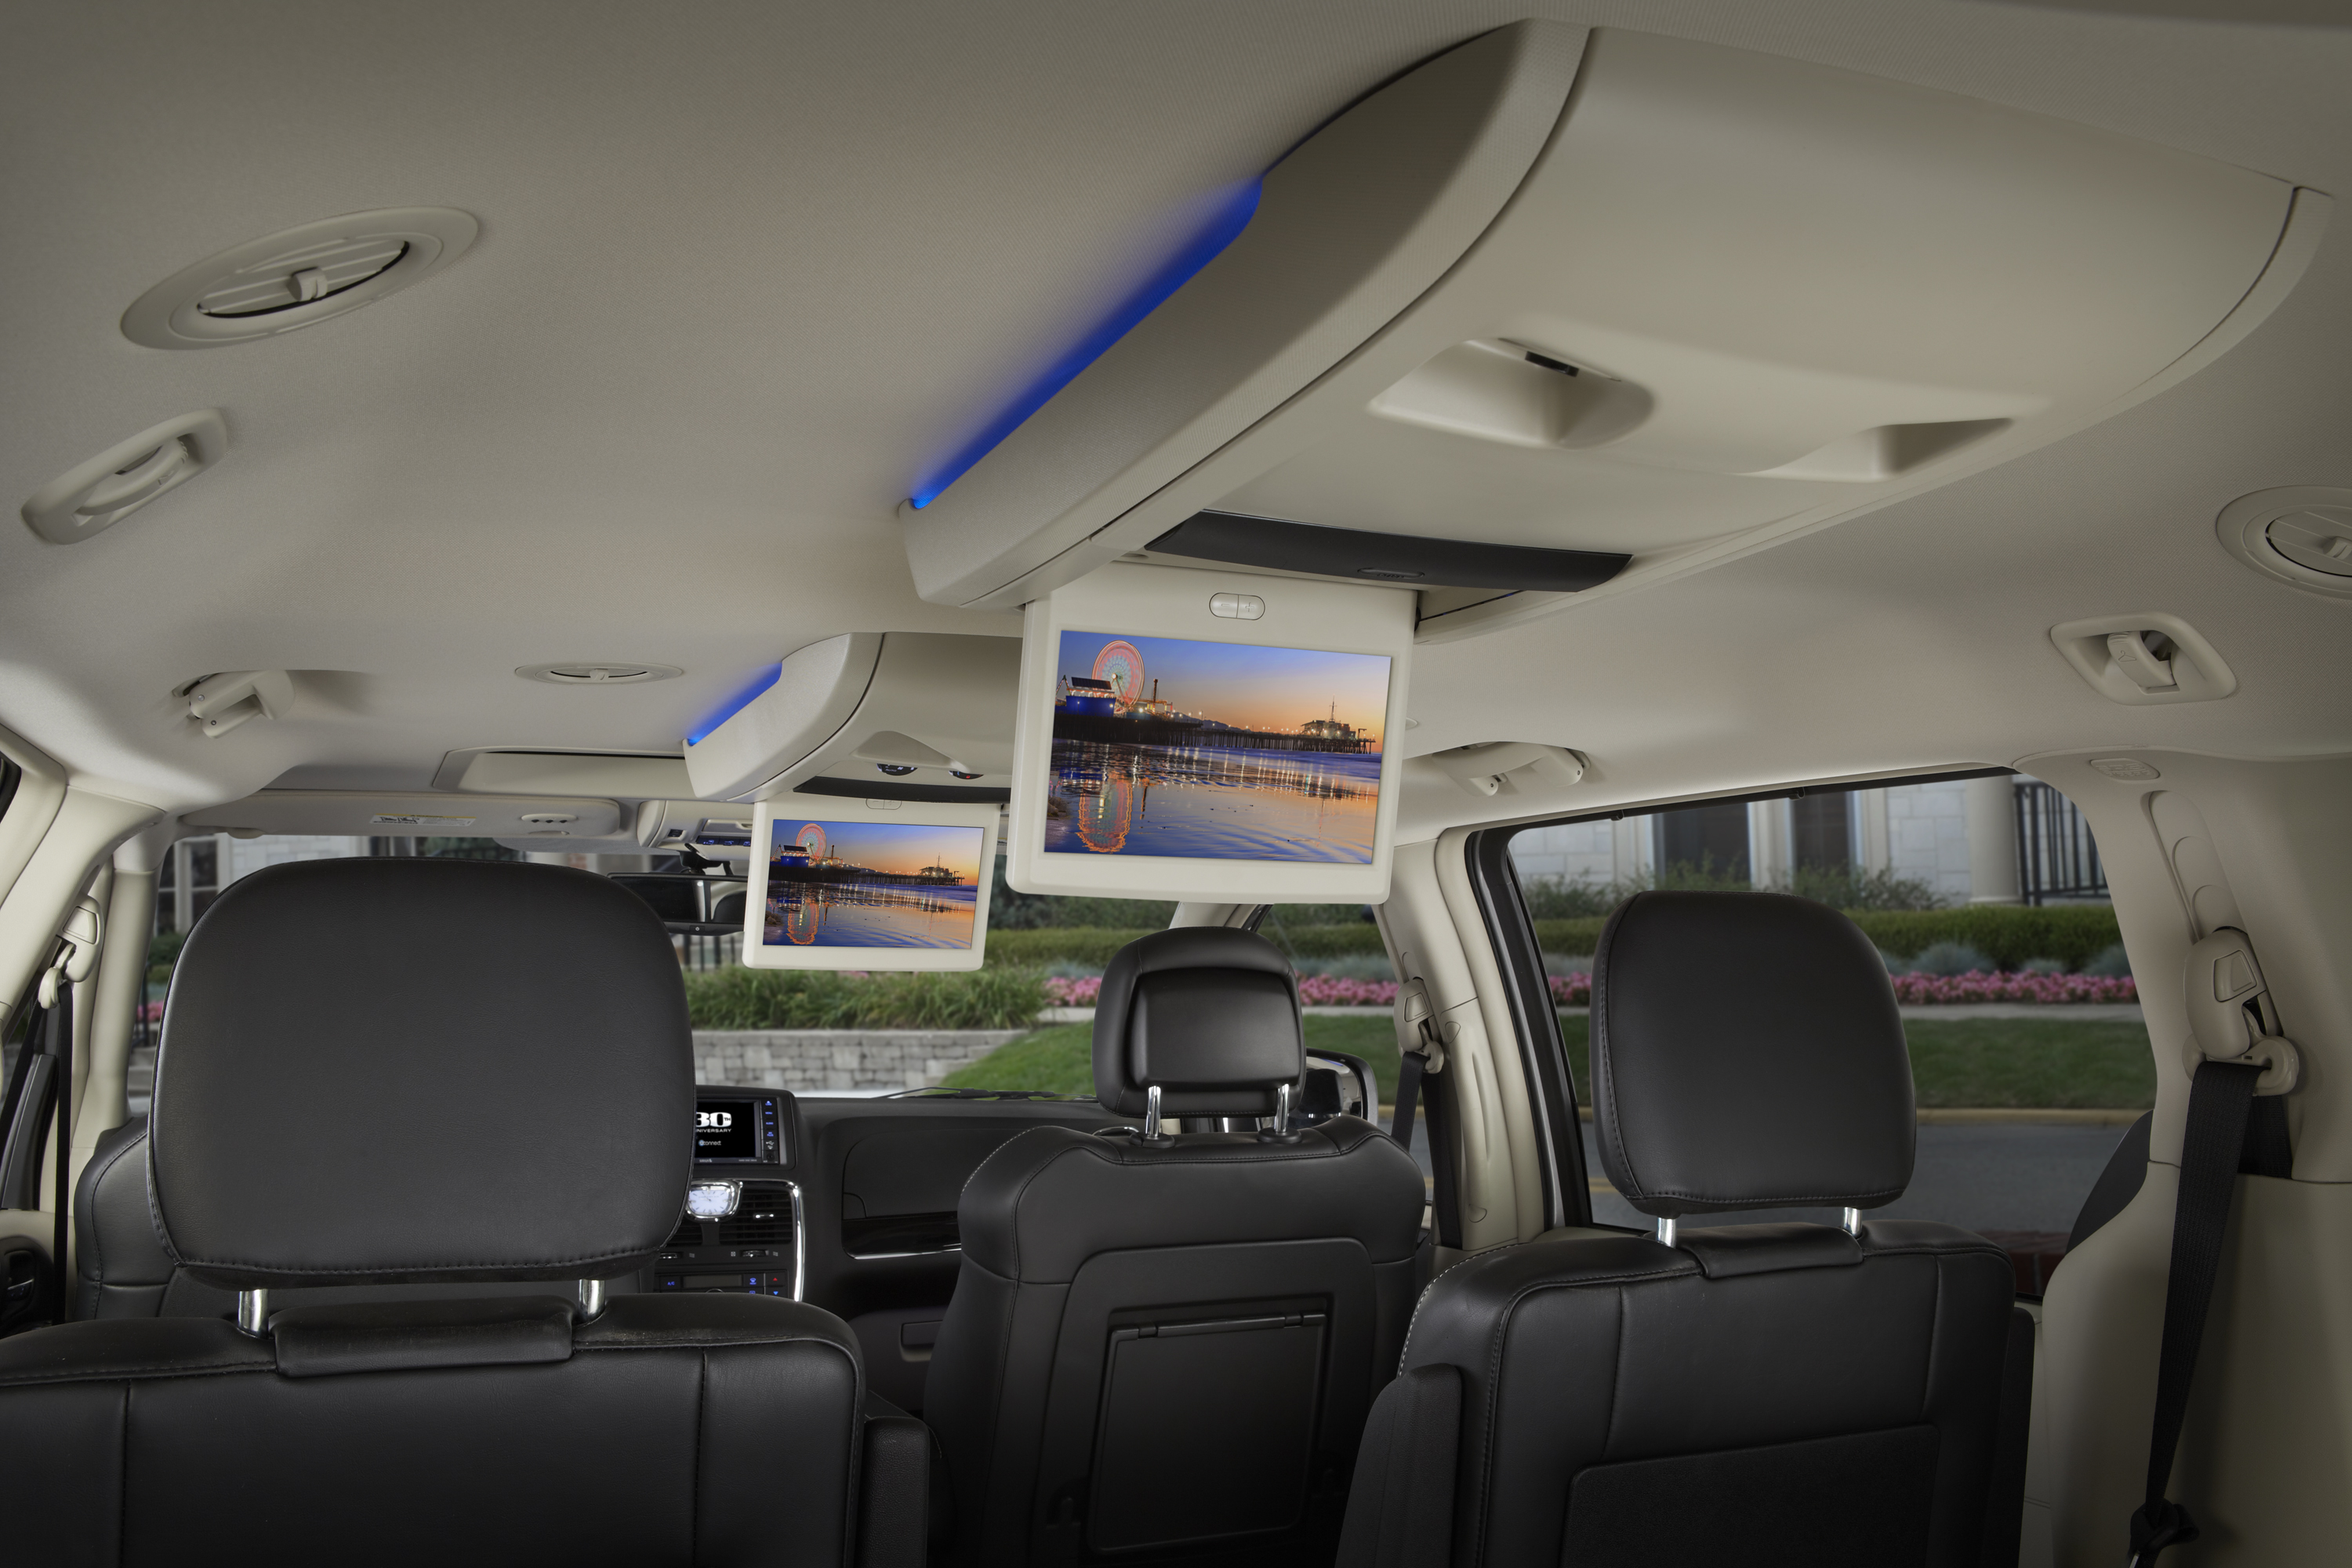 chrysler town & country images